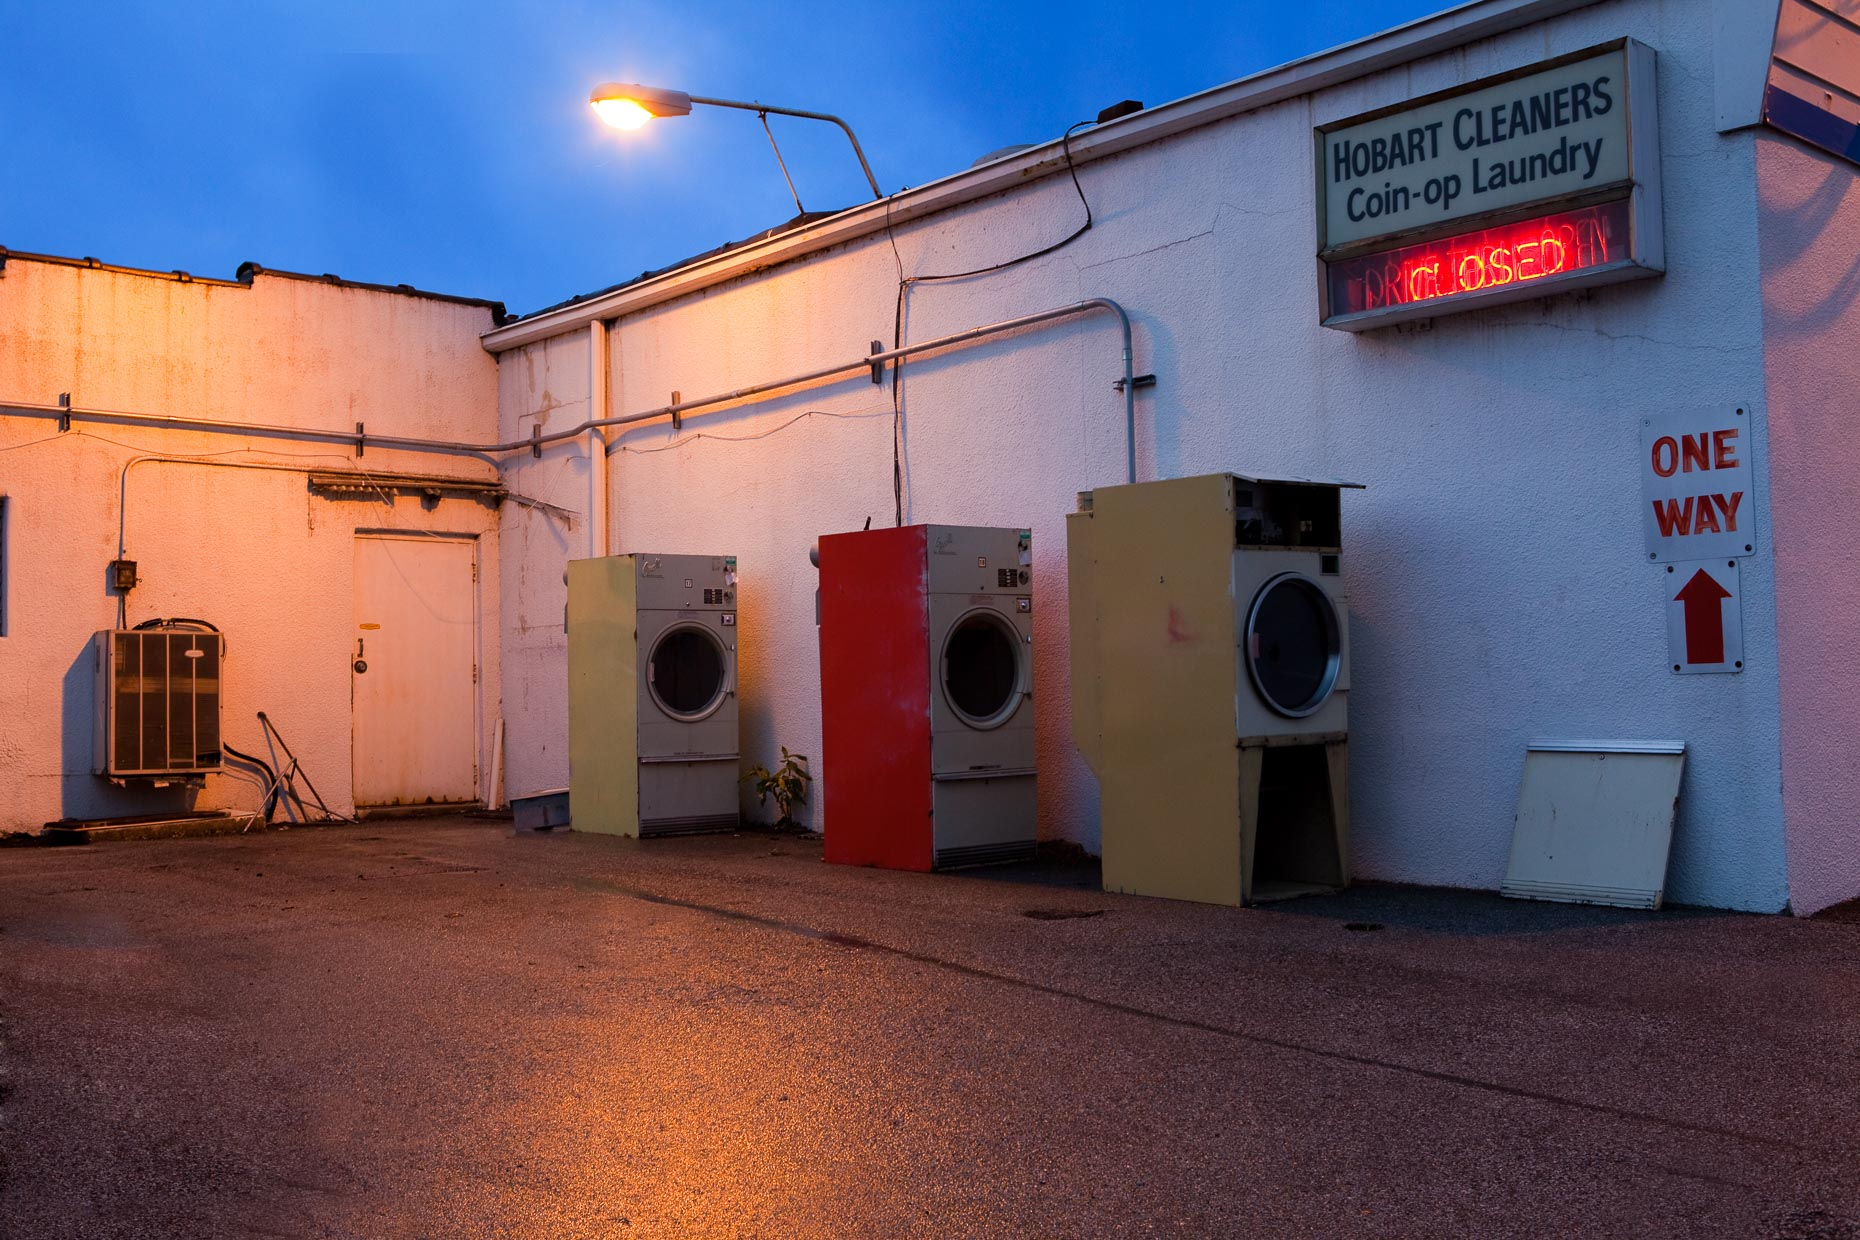 Washing machines dryers behind cleaners coin operated laundry by David Zaitz